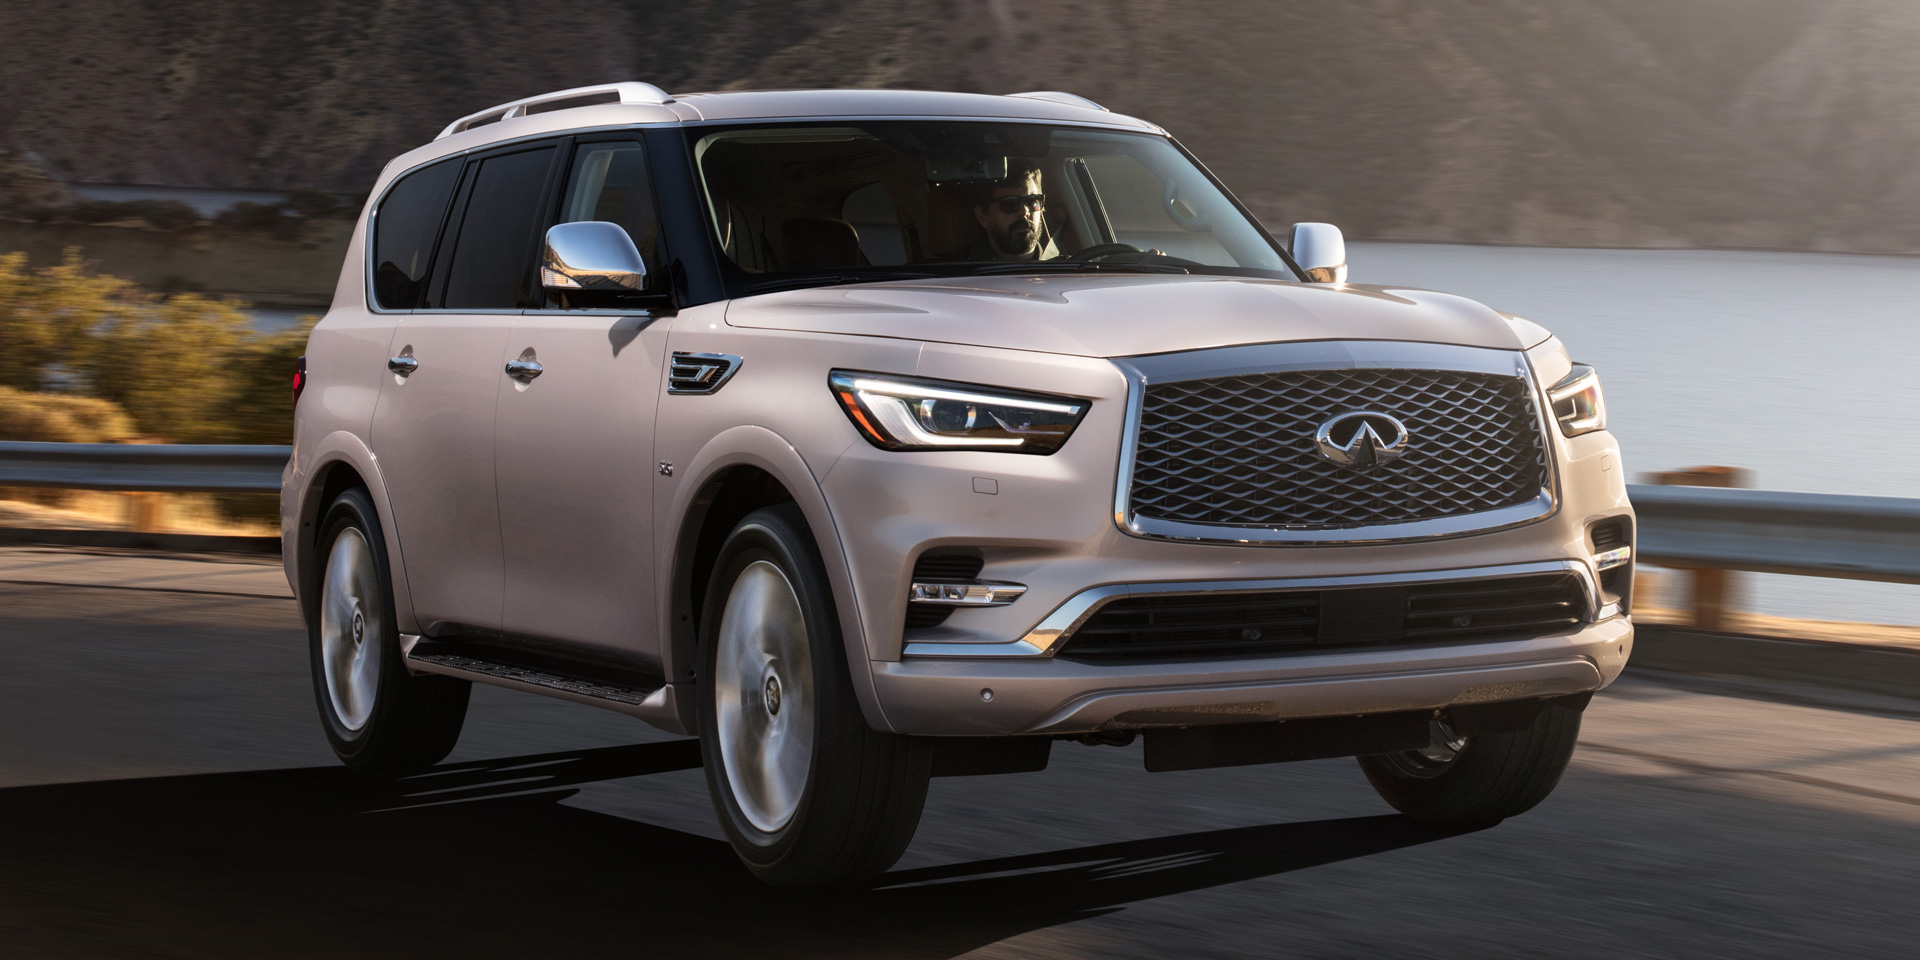 2018 infiniti qx80 vehicles on display chicago auto show. Black Bedroom Furniture Sets. Home Design Ideas